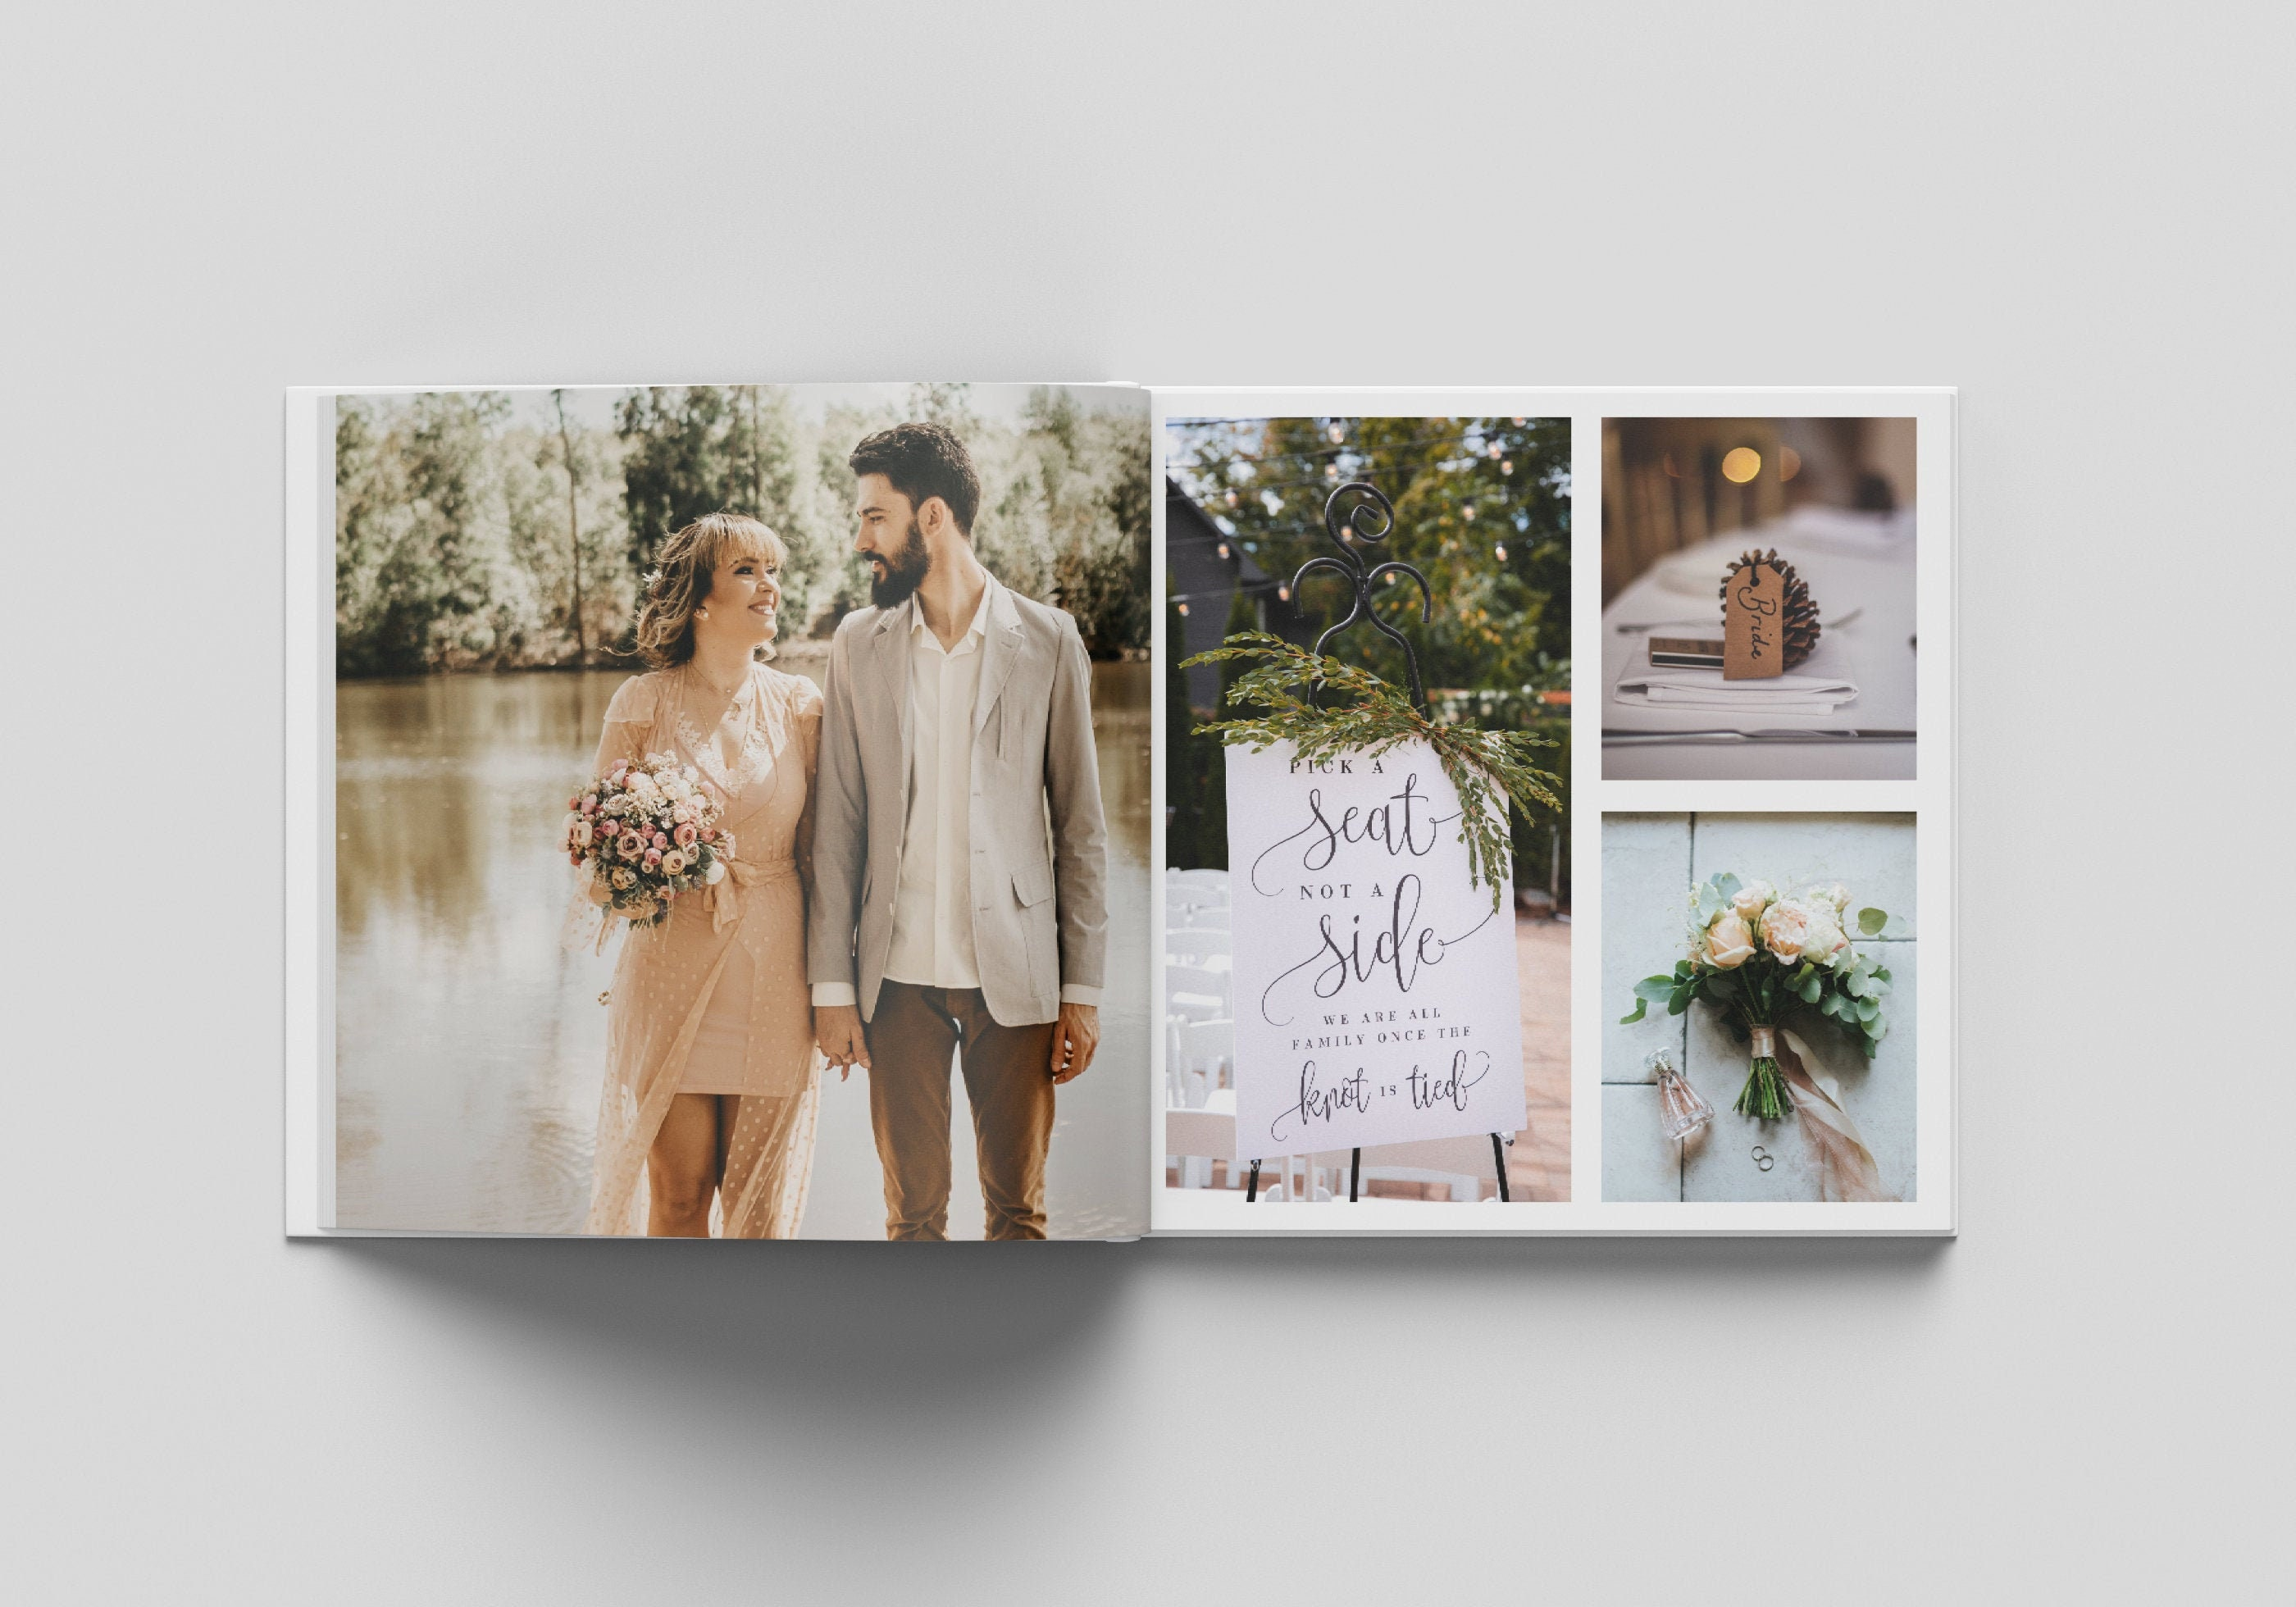 A photograph of an open book, with wedding photos printed on the pages inside. The left-hand page has an image printed to the page edges.